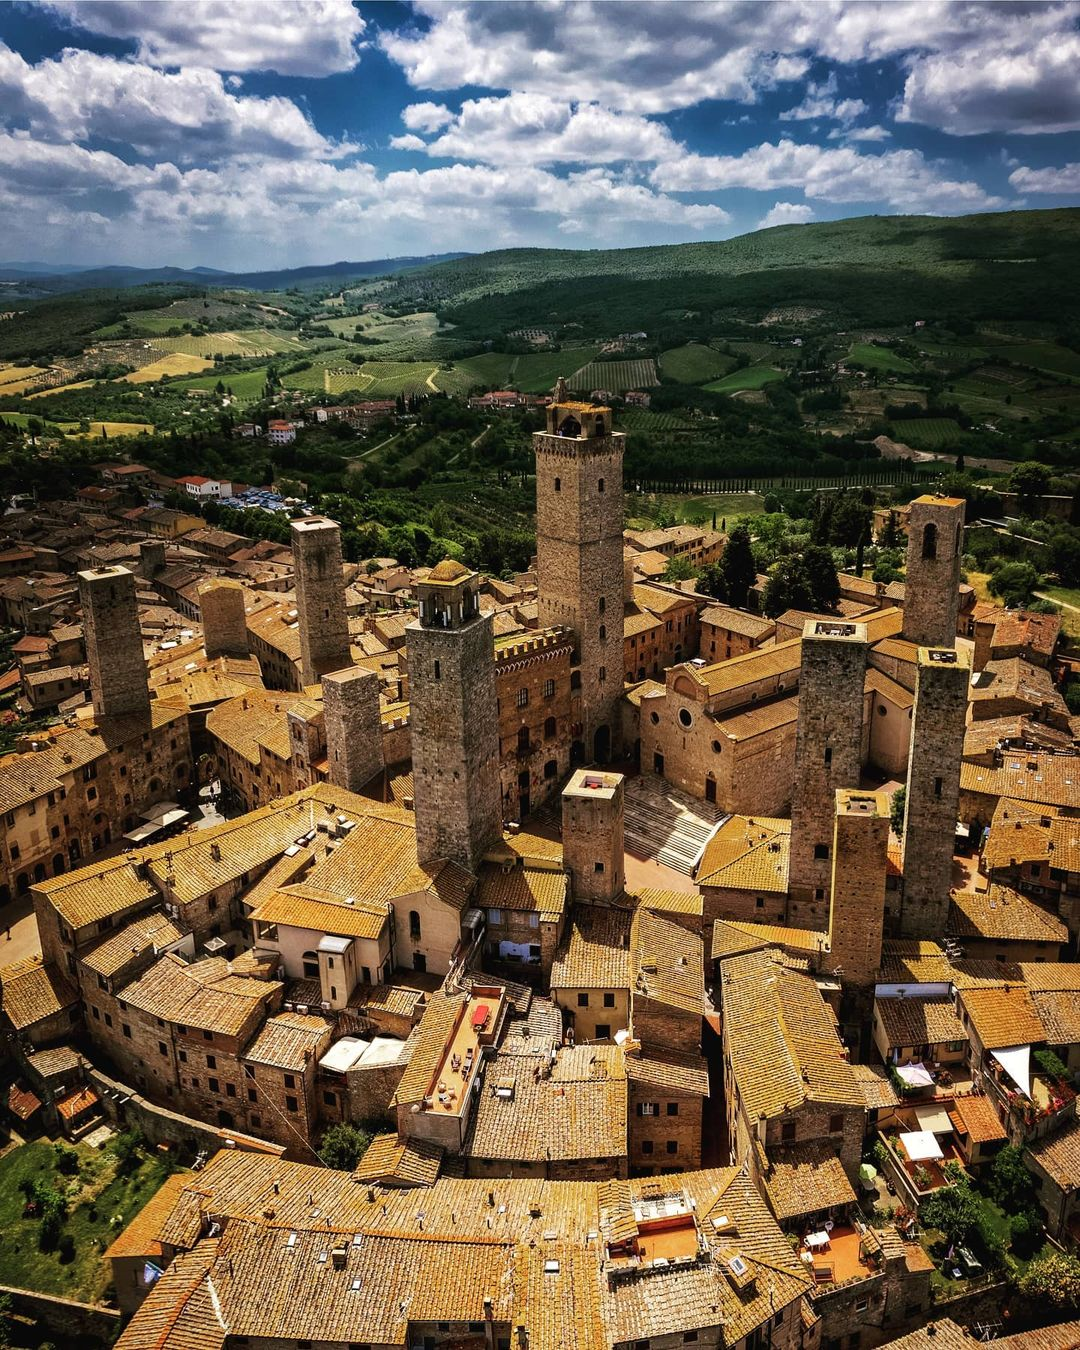 Questions about San Gimignano